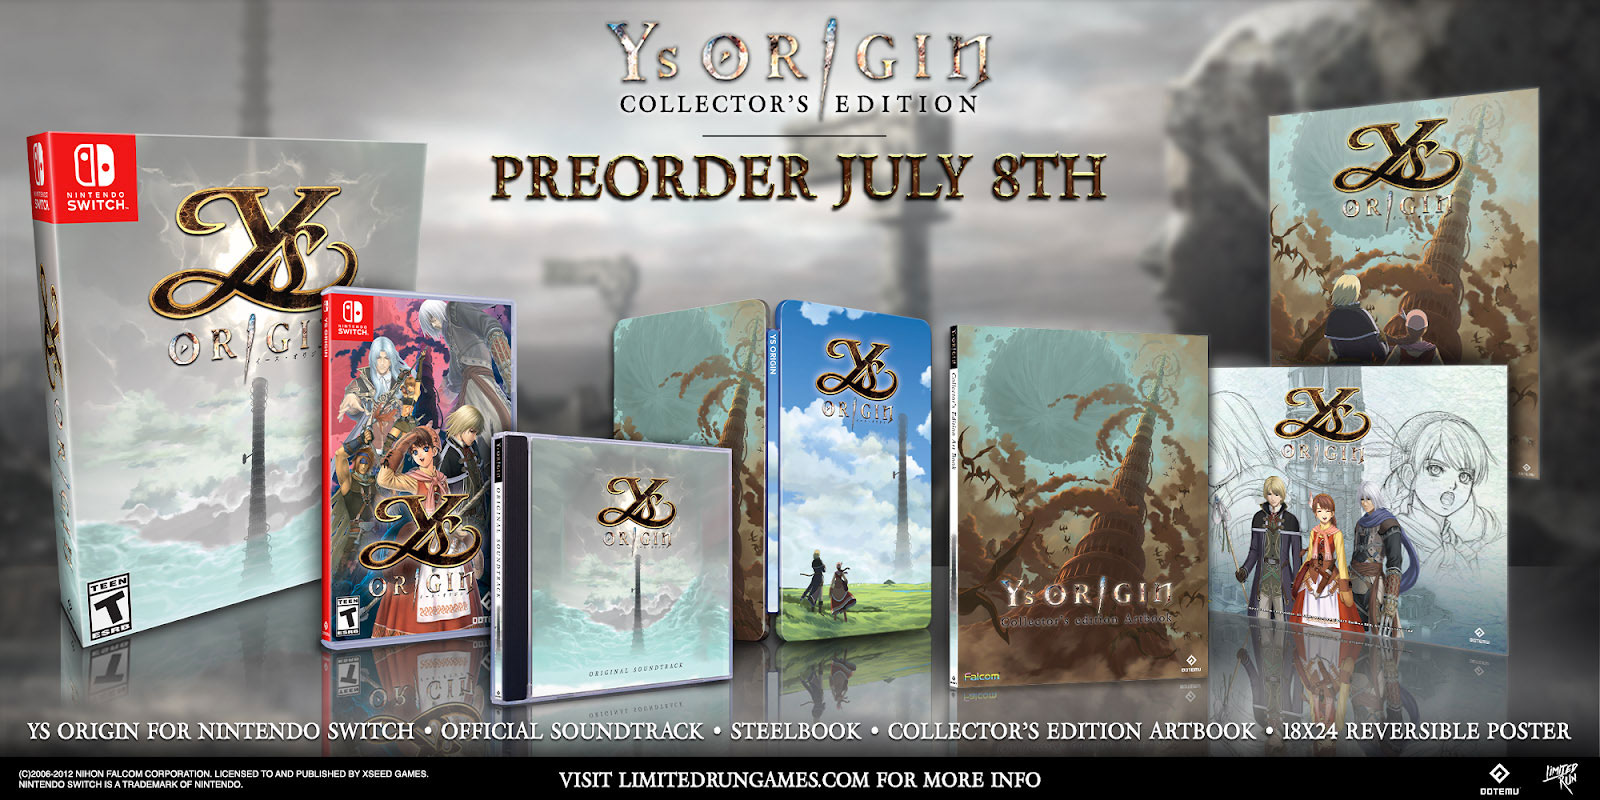 Ys Origin Collector's Edition